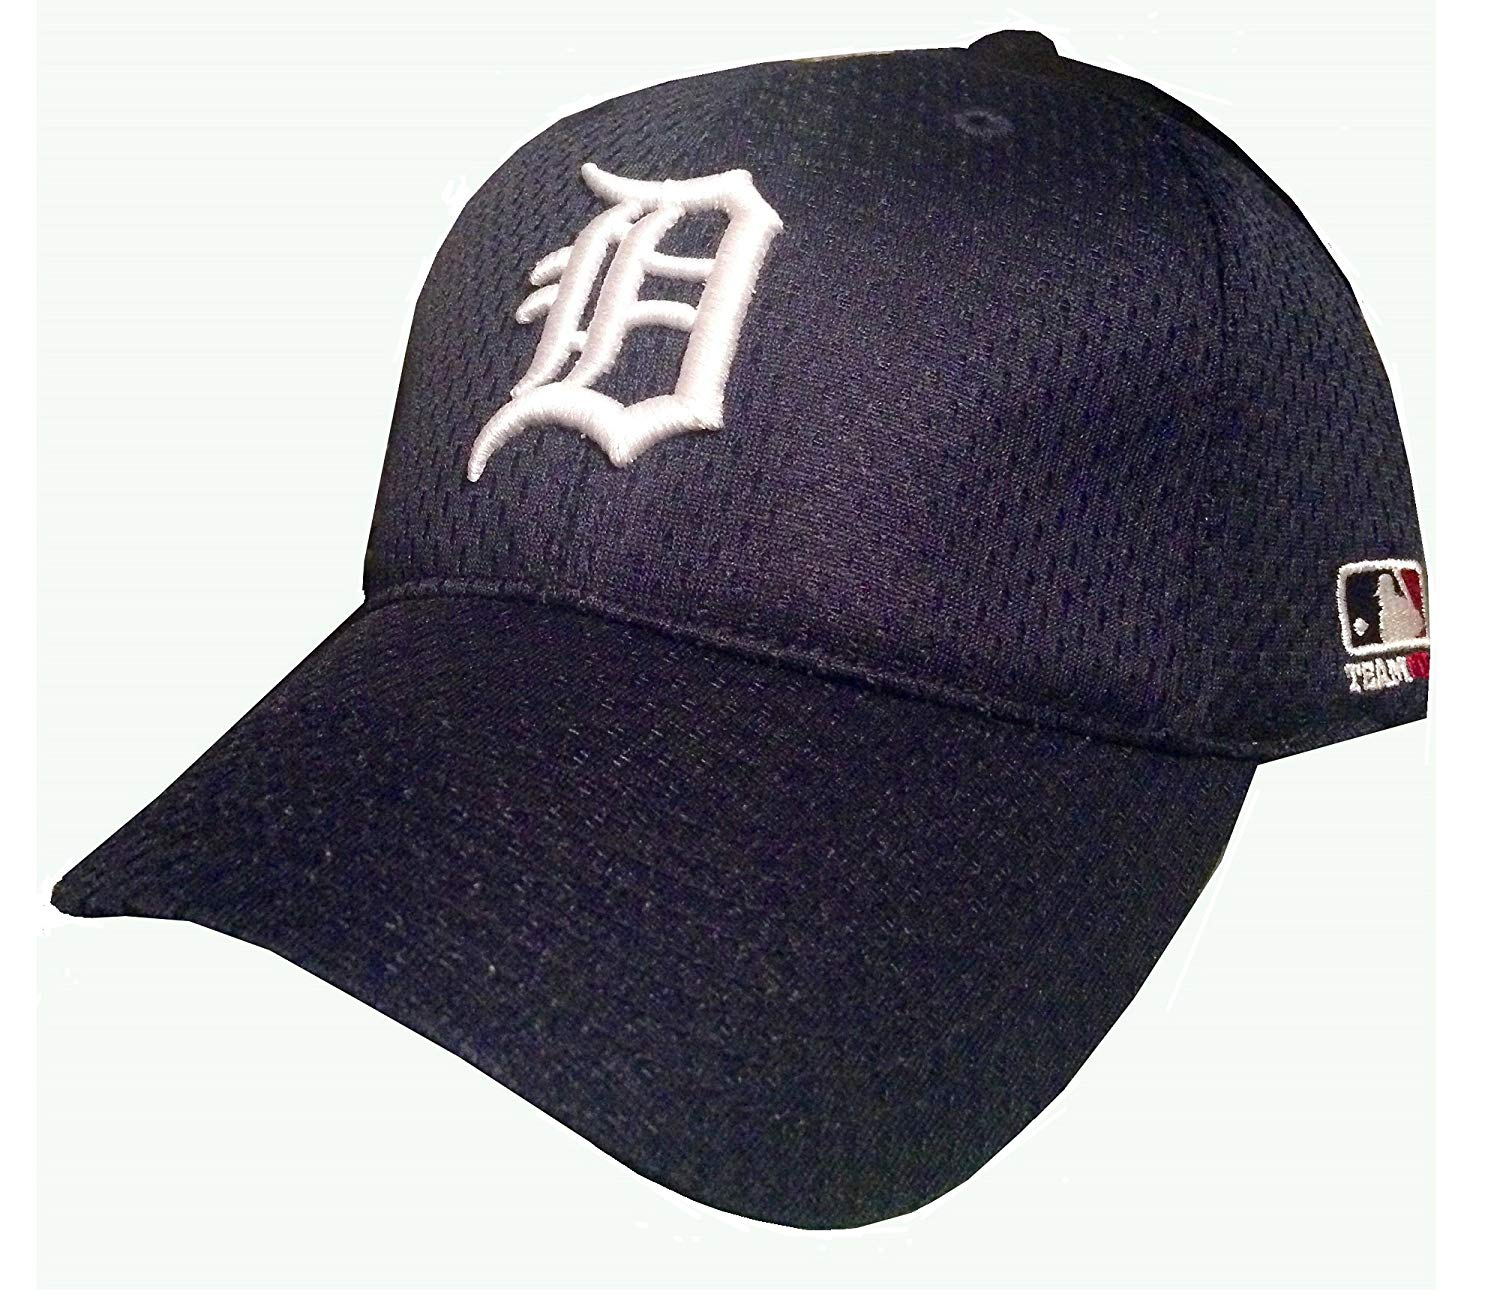 0d250f241268e australia evoshield grandstand ii hat lids 996ef d94d5  coupon for get  quotations detroit tigers flexfit jersey mesh hat navy size large extra  large cf566